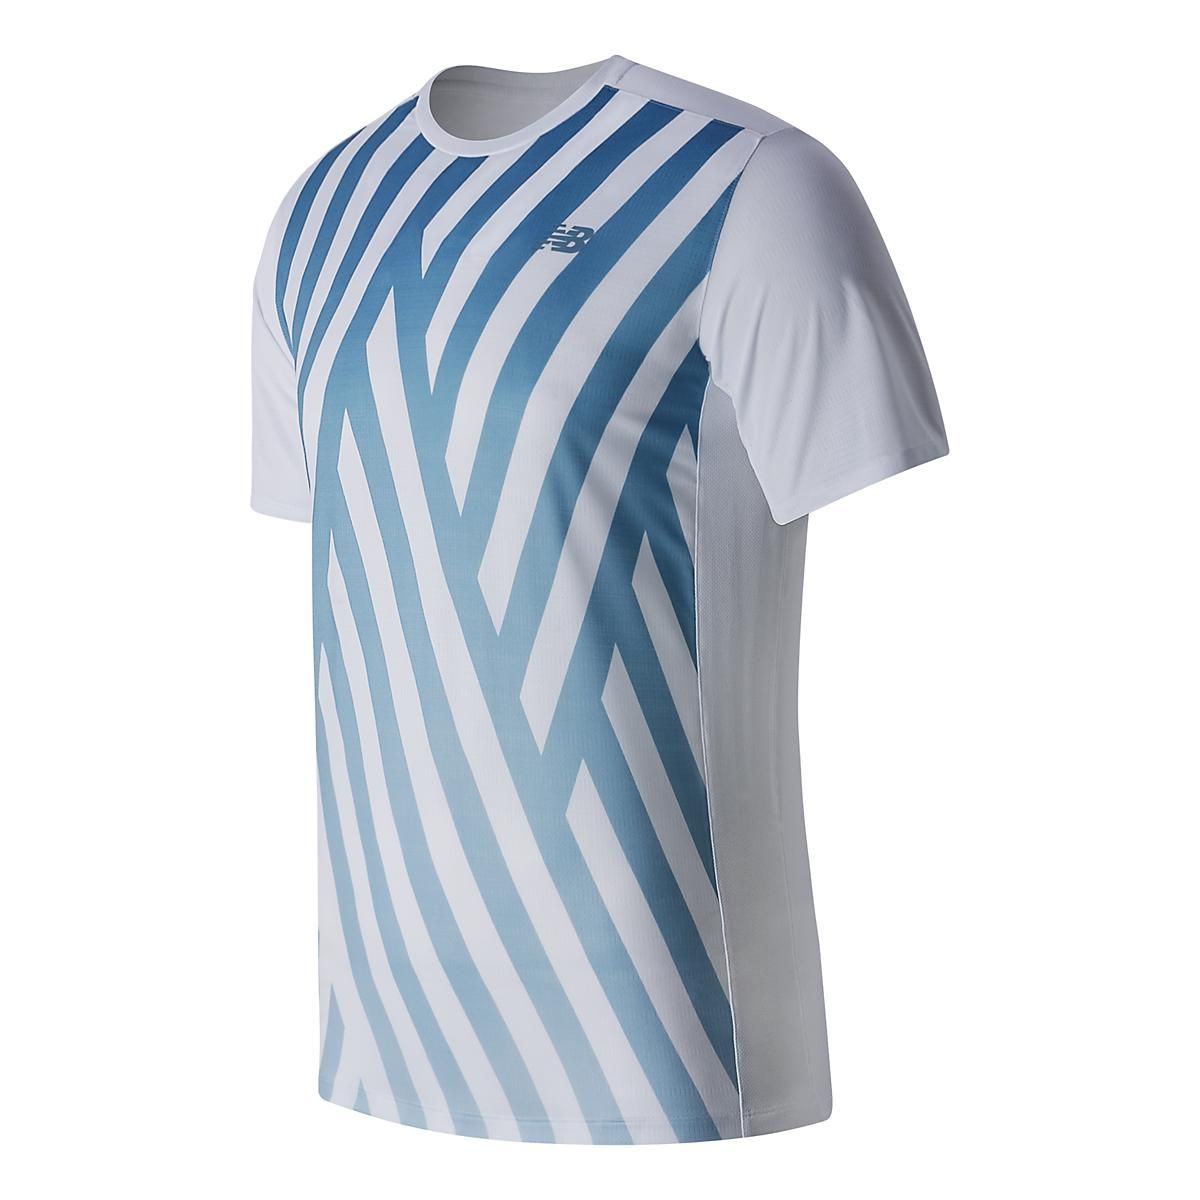 Men S Brunton Crew Jersey Design Sleek Fashion Mens Shirts